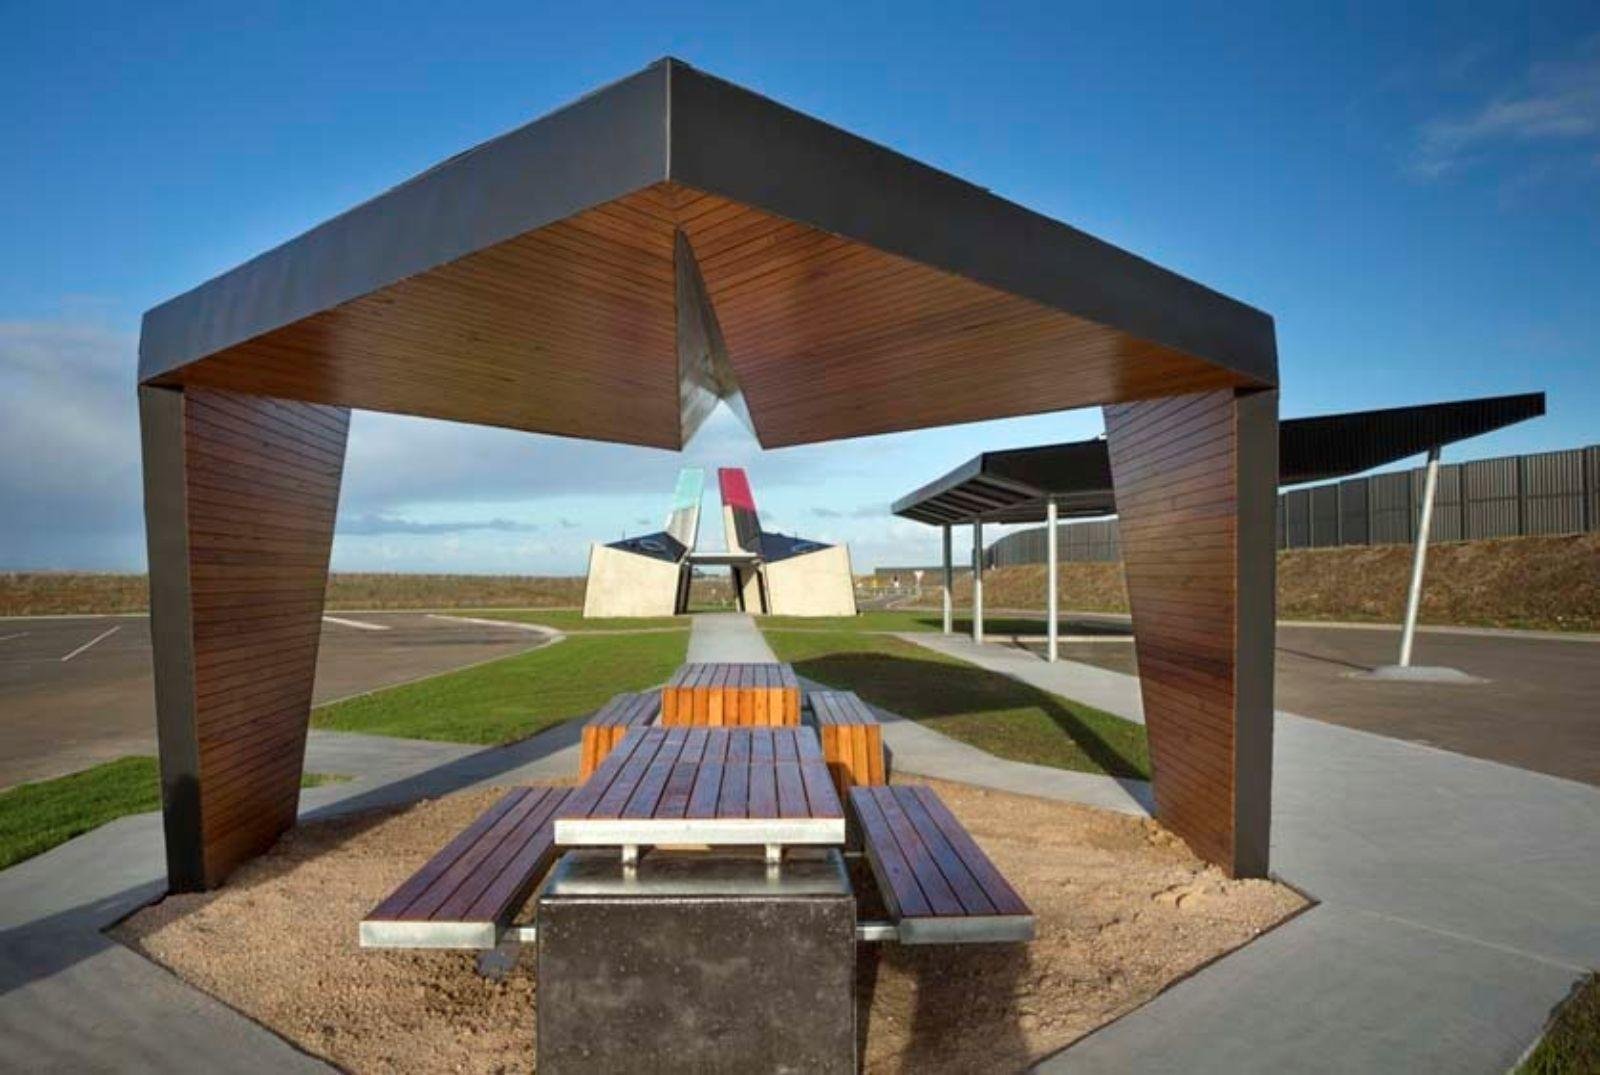 Geelong Ring Road Truck Stop Rest Areas Bkk Architects01